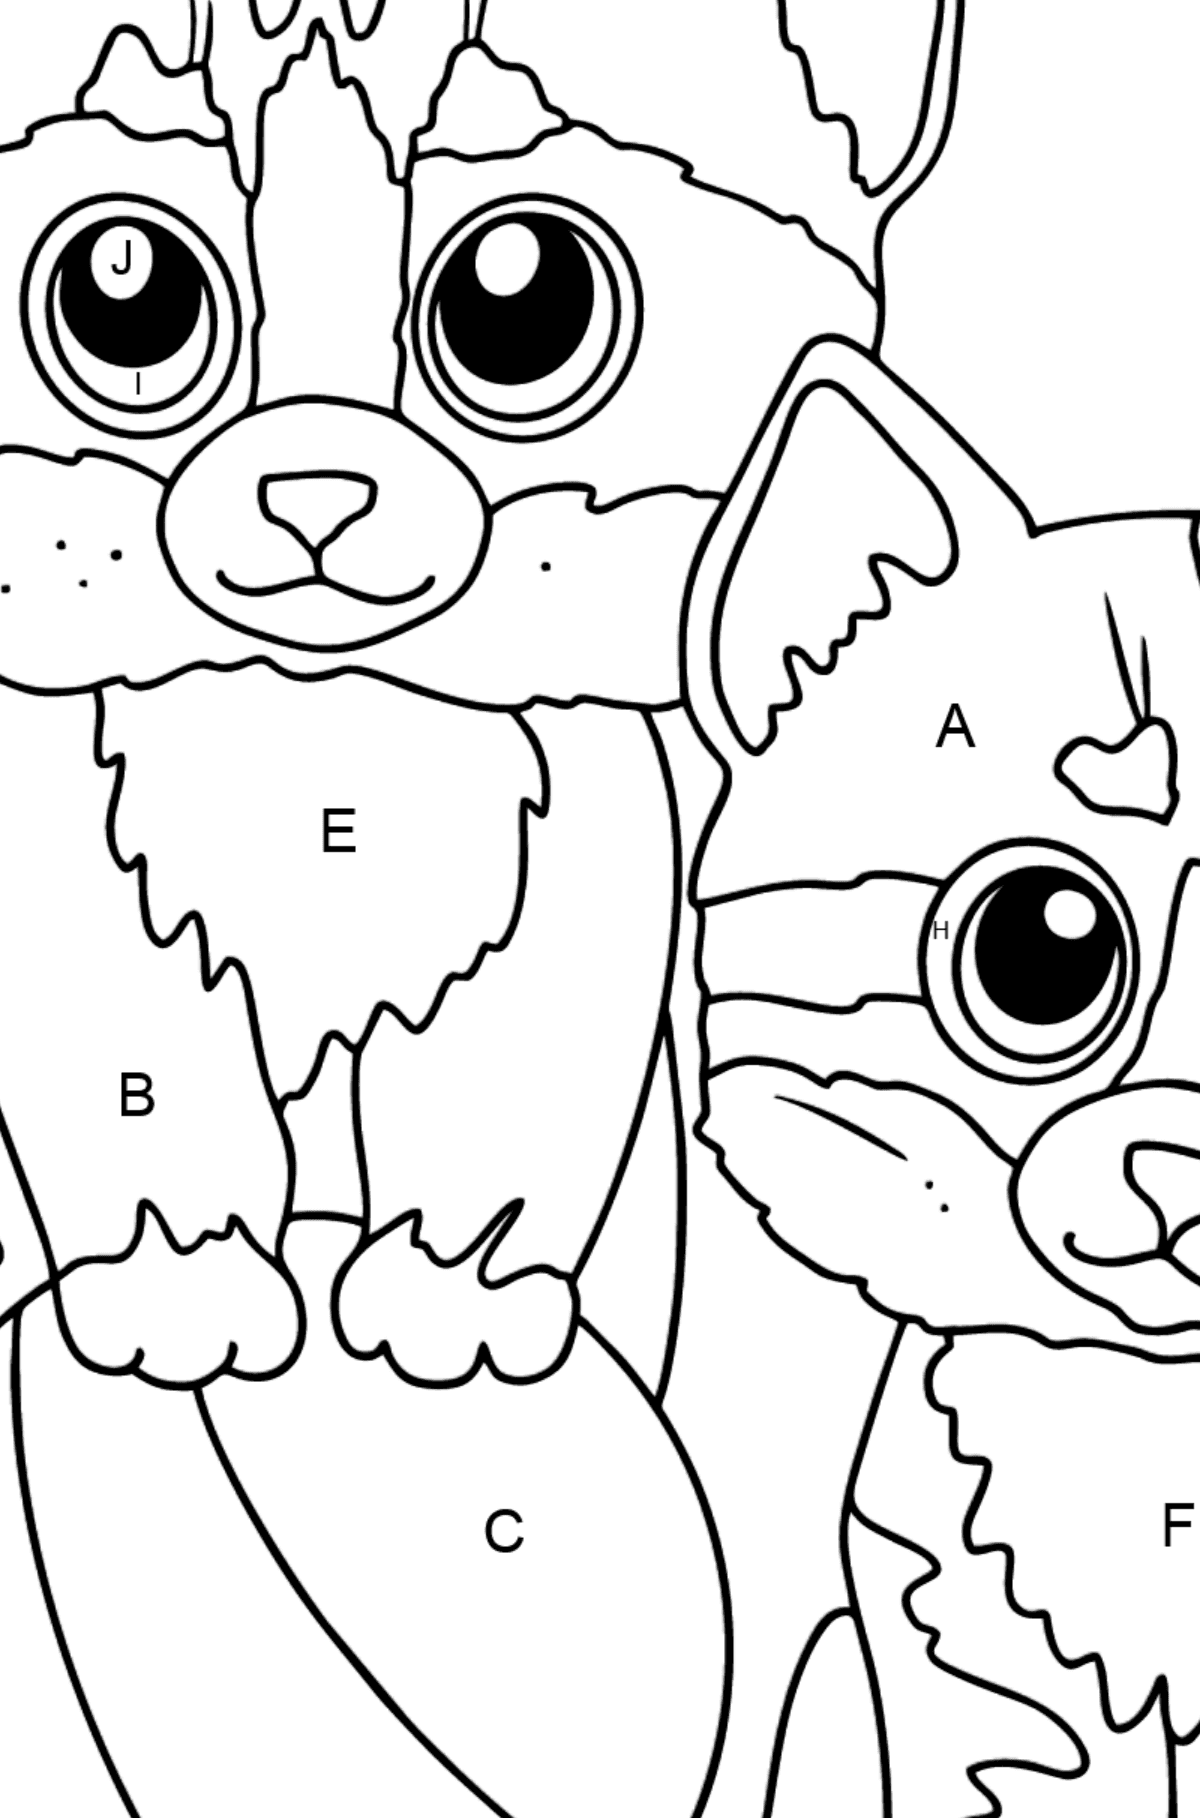 Coloring Page - Two Friendly Kittens Playing with a Ball - Coloring by Letters for Kids